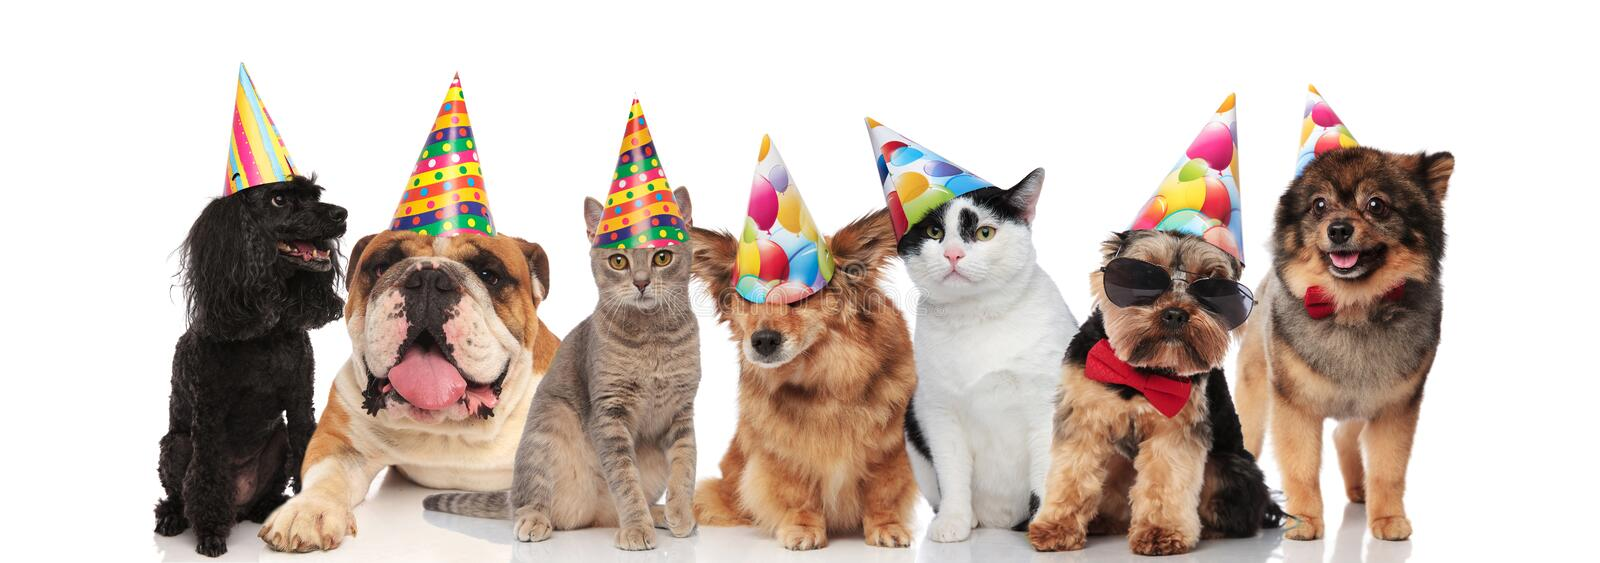 Group of seven adorable cats and dogs on birthday party. Sitting and lying on white background stock photo